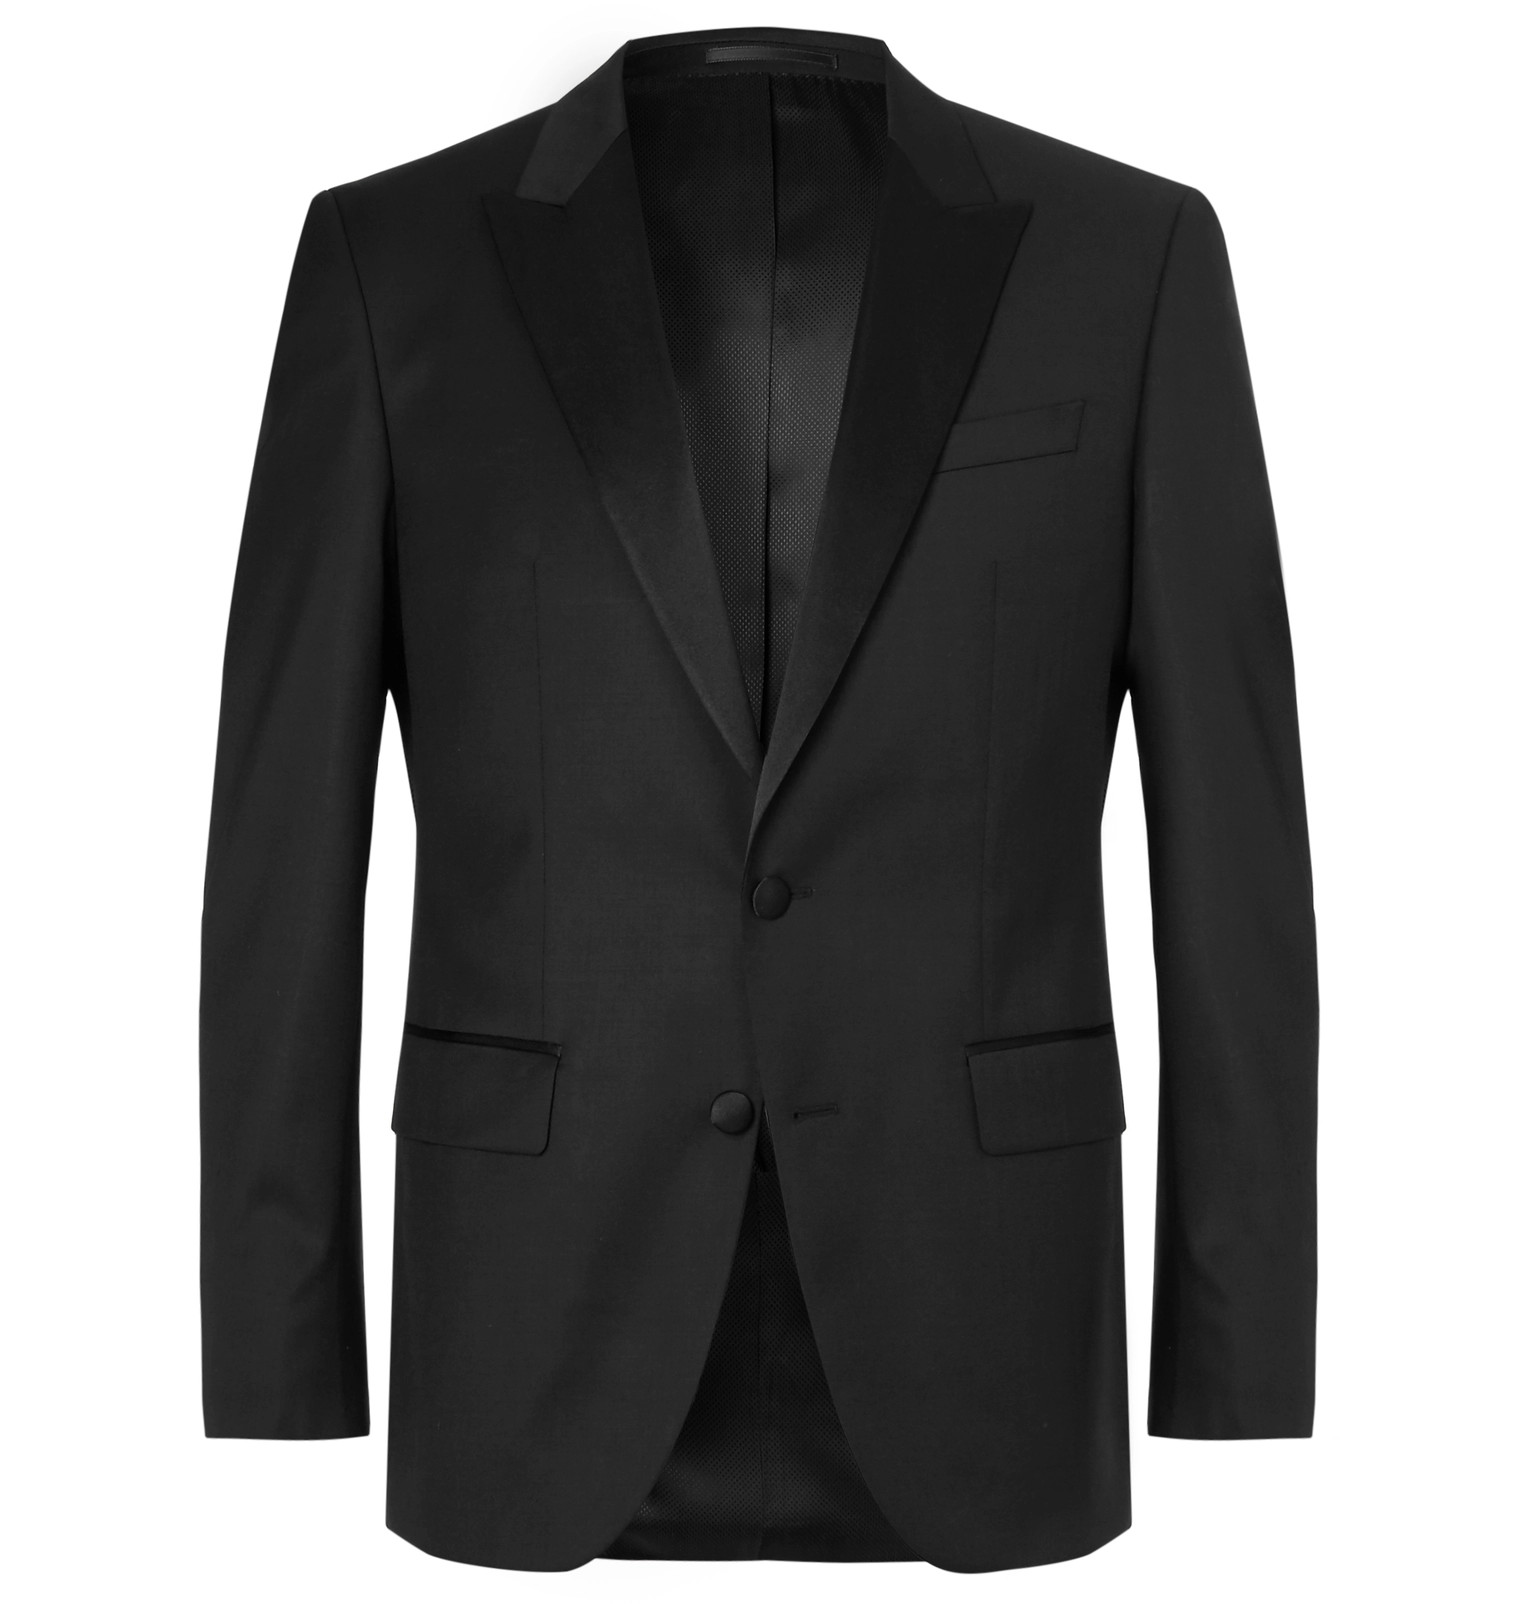 8c591a3df12 Hugo Boss - Black Halwood Slim-Fit Super 120s Virgin Wool Tuxedo Jacket